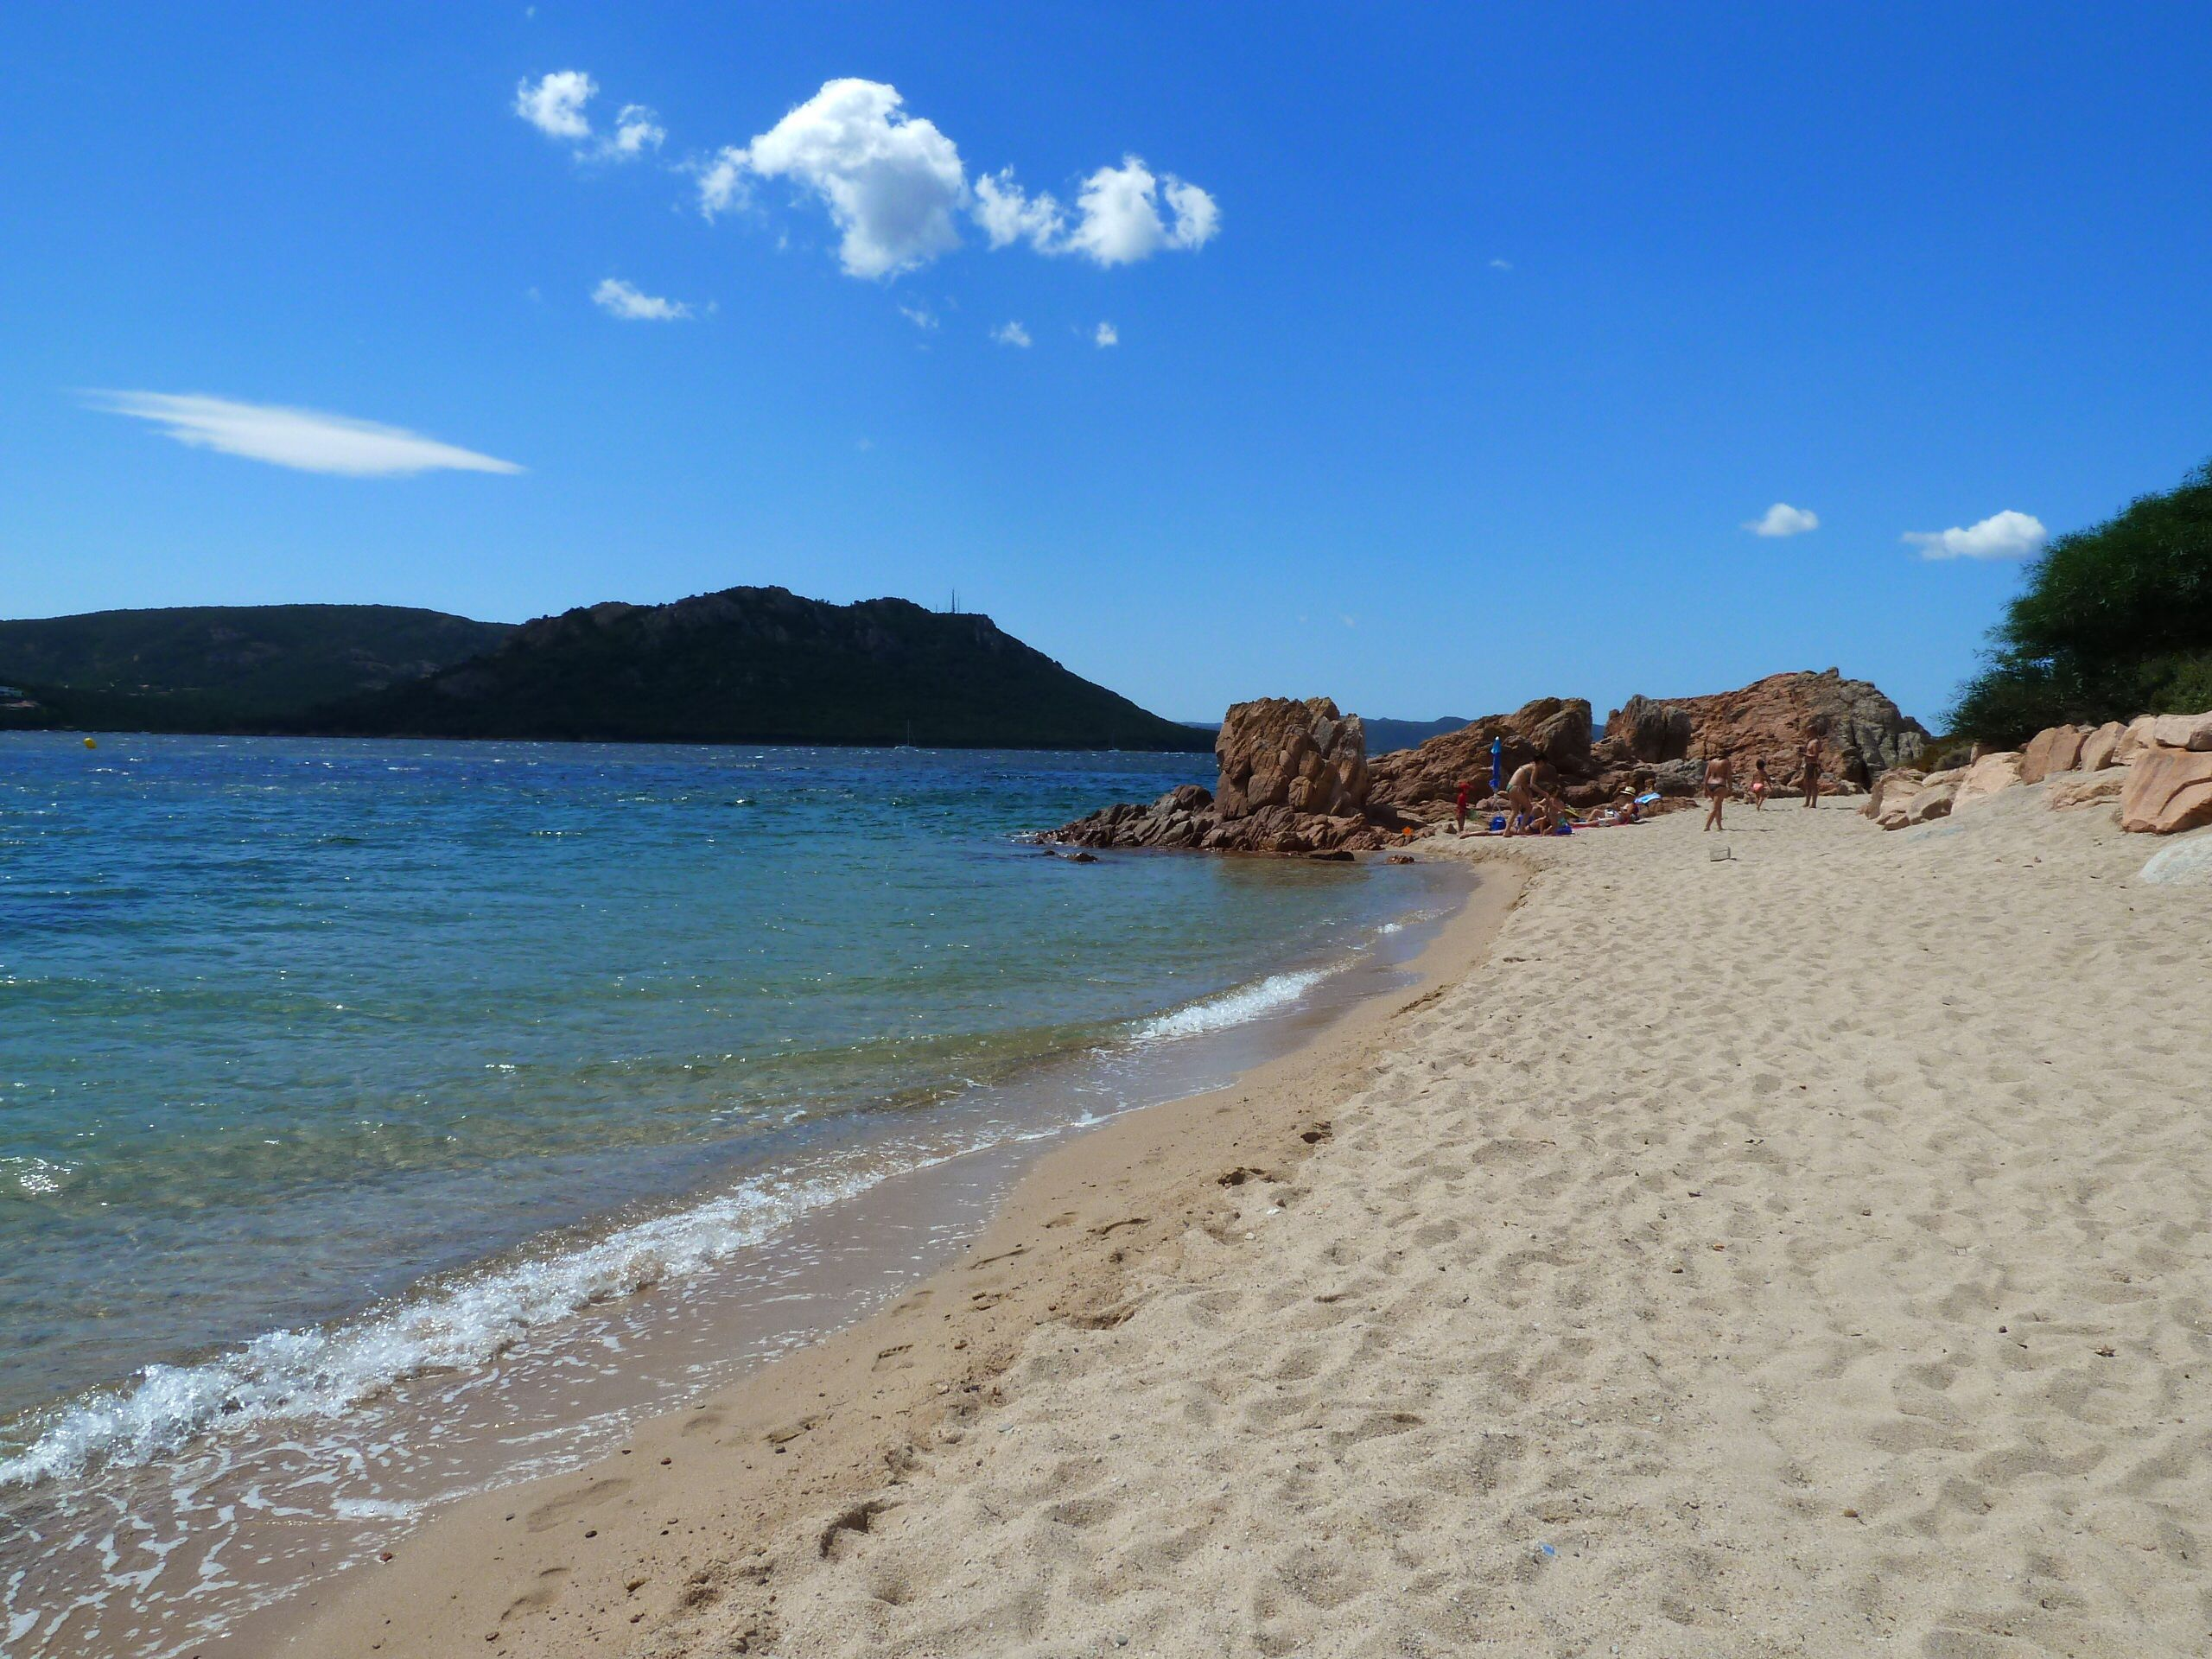 Cala Rossa Cove in Lecci - South Corsica - France - Plages.tv